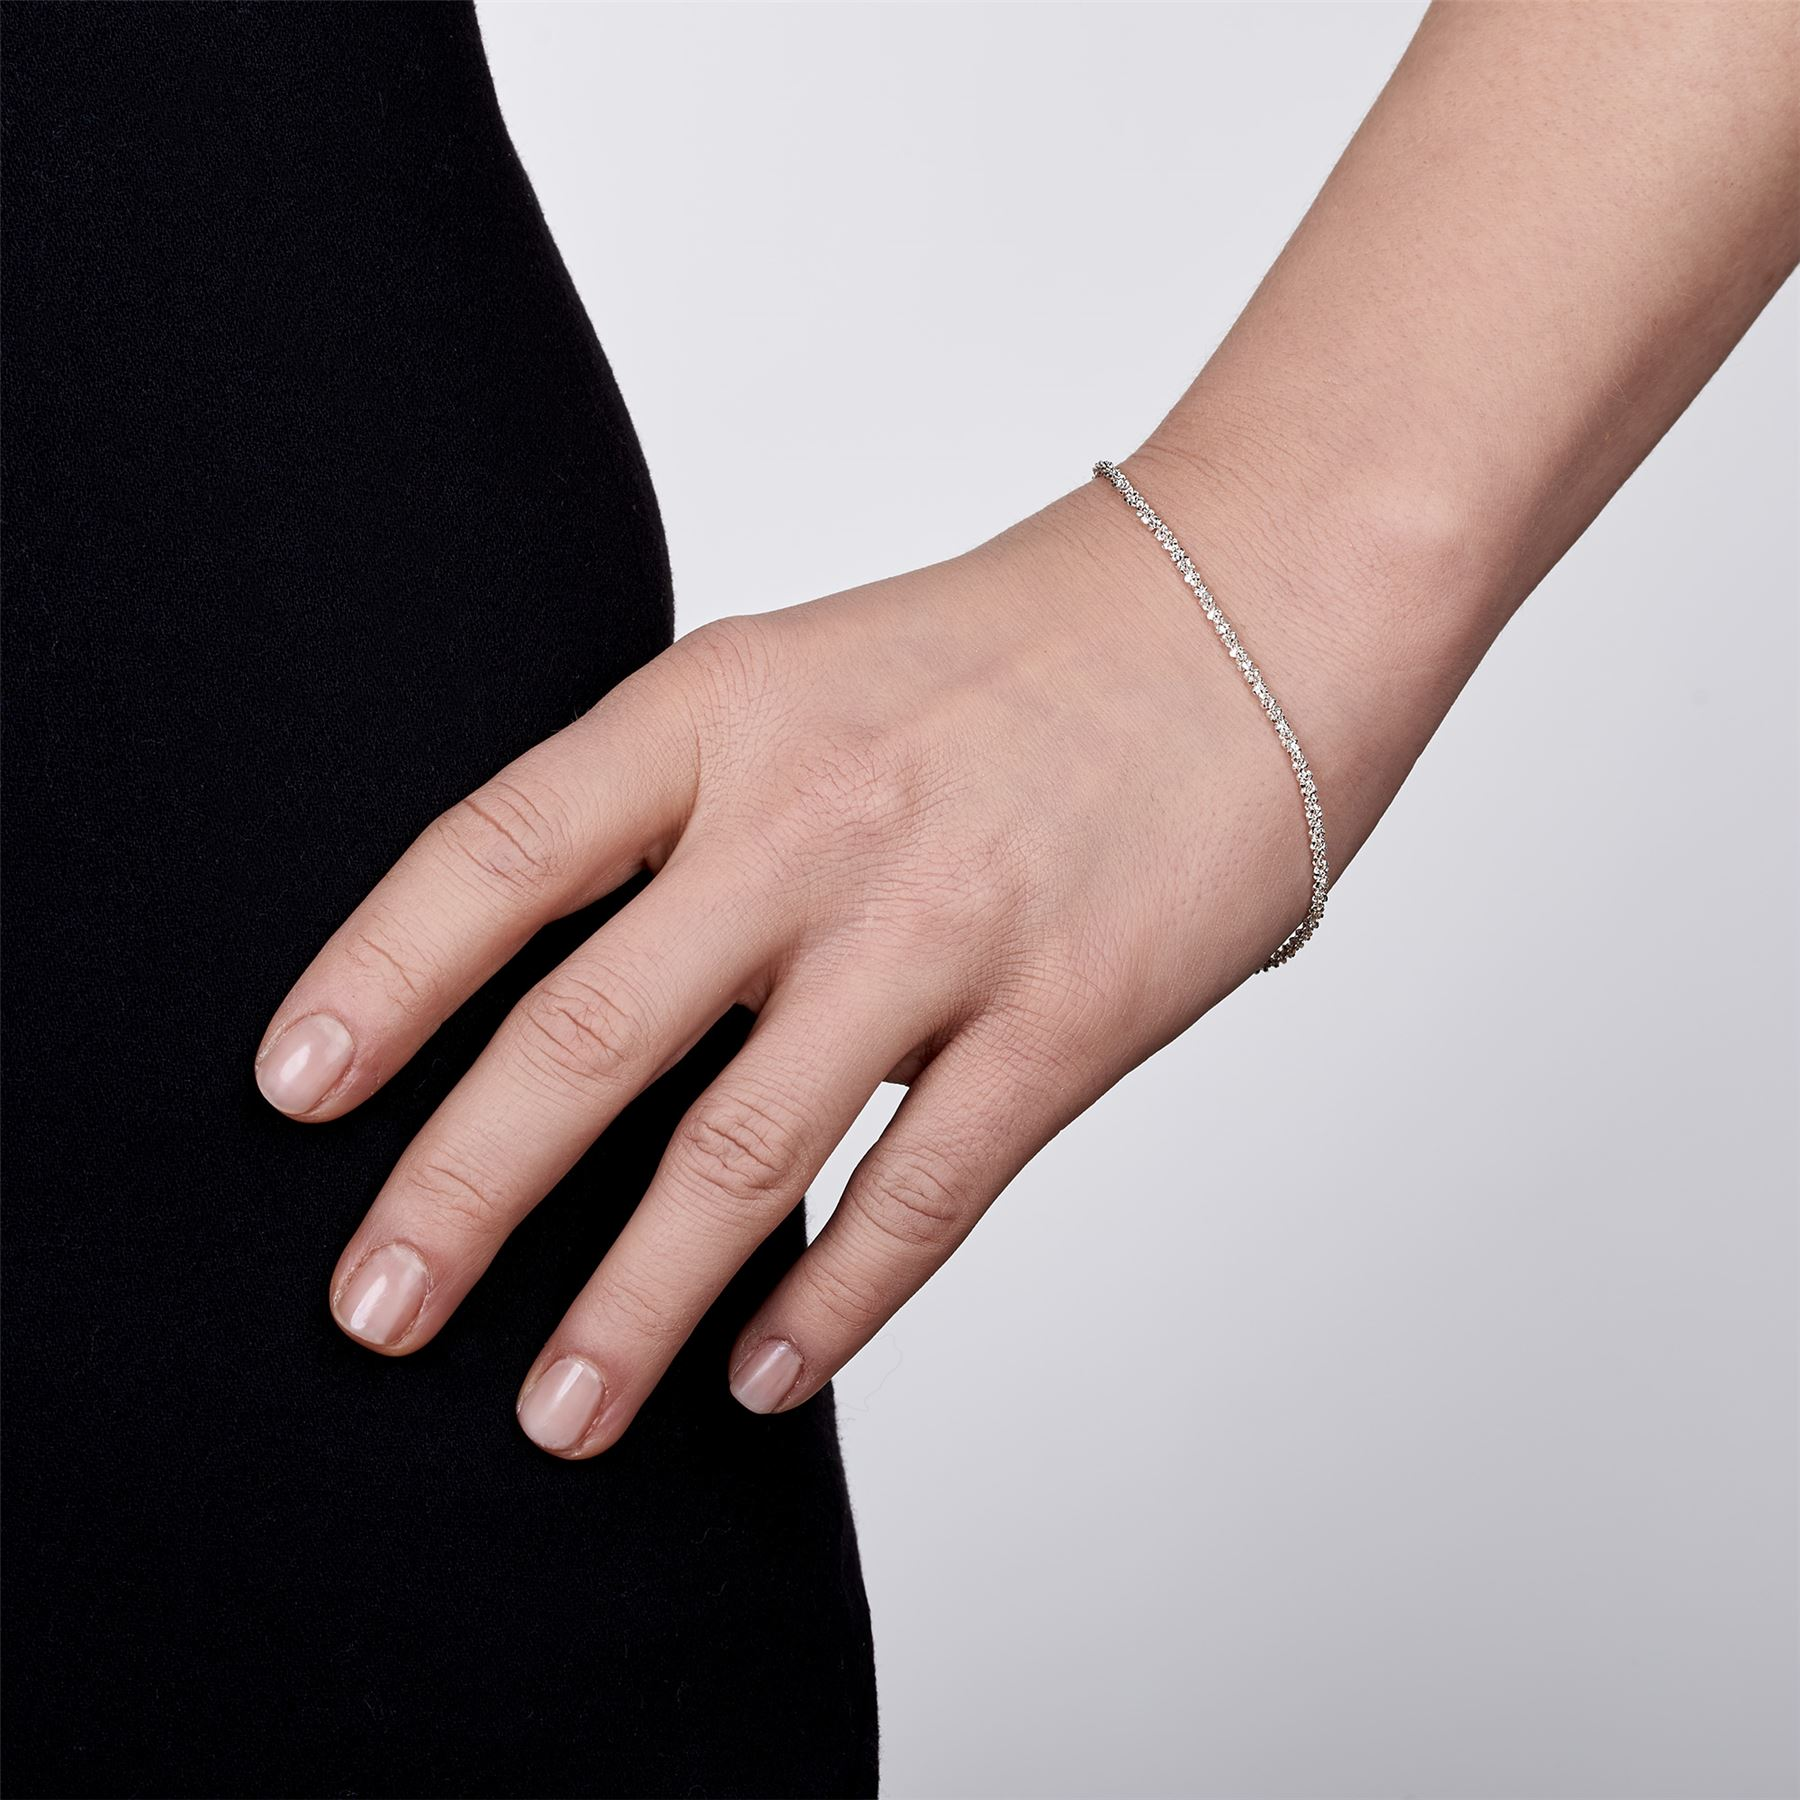 Amberta-Jewelry-Genuine-925-Sterling-Silver-Bracelet-Bangle-Chain-Made-in-Italy thumbnail 56